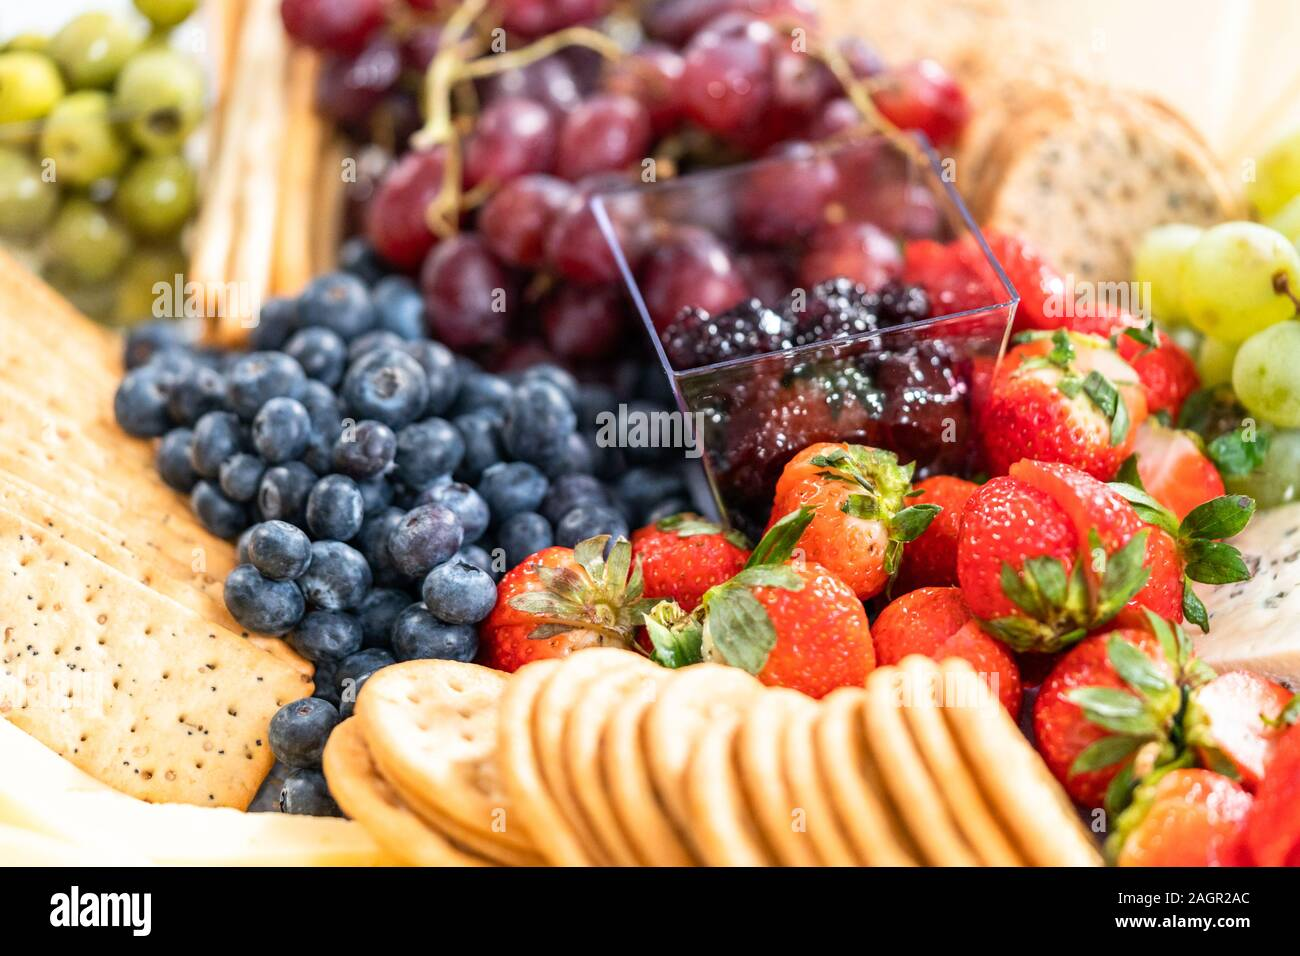 Gourmet Party Cheese Platter With Fruit Cheese And Crackers Stock Photo Alamy